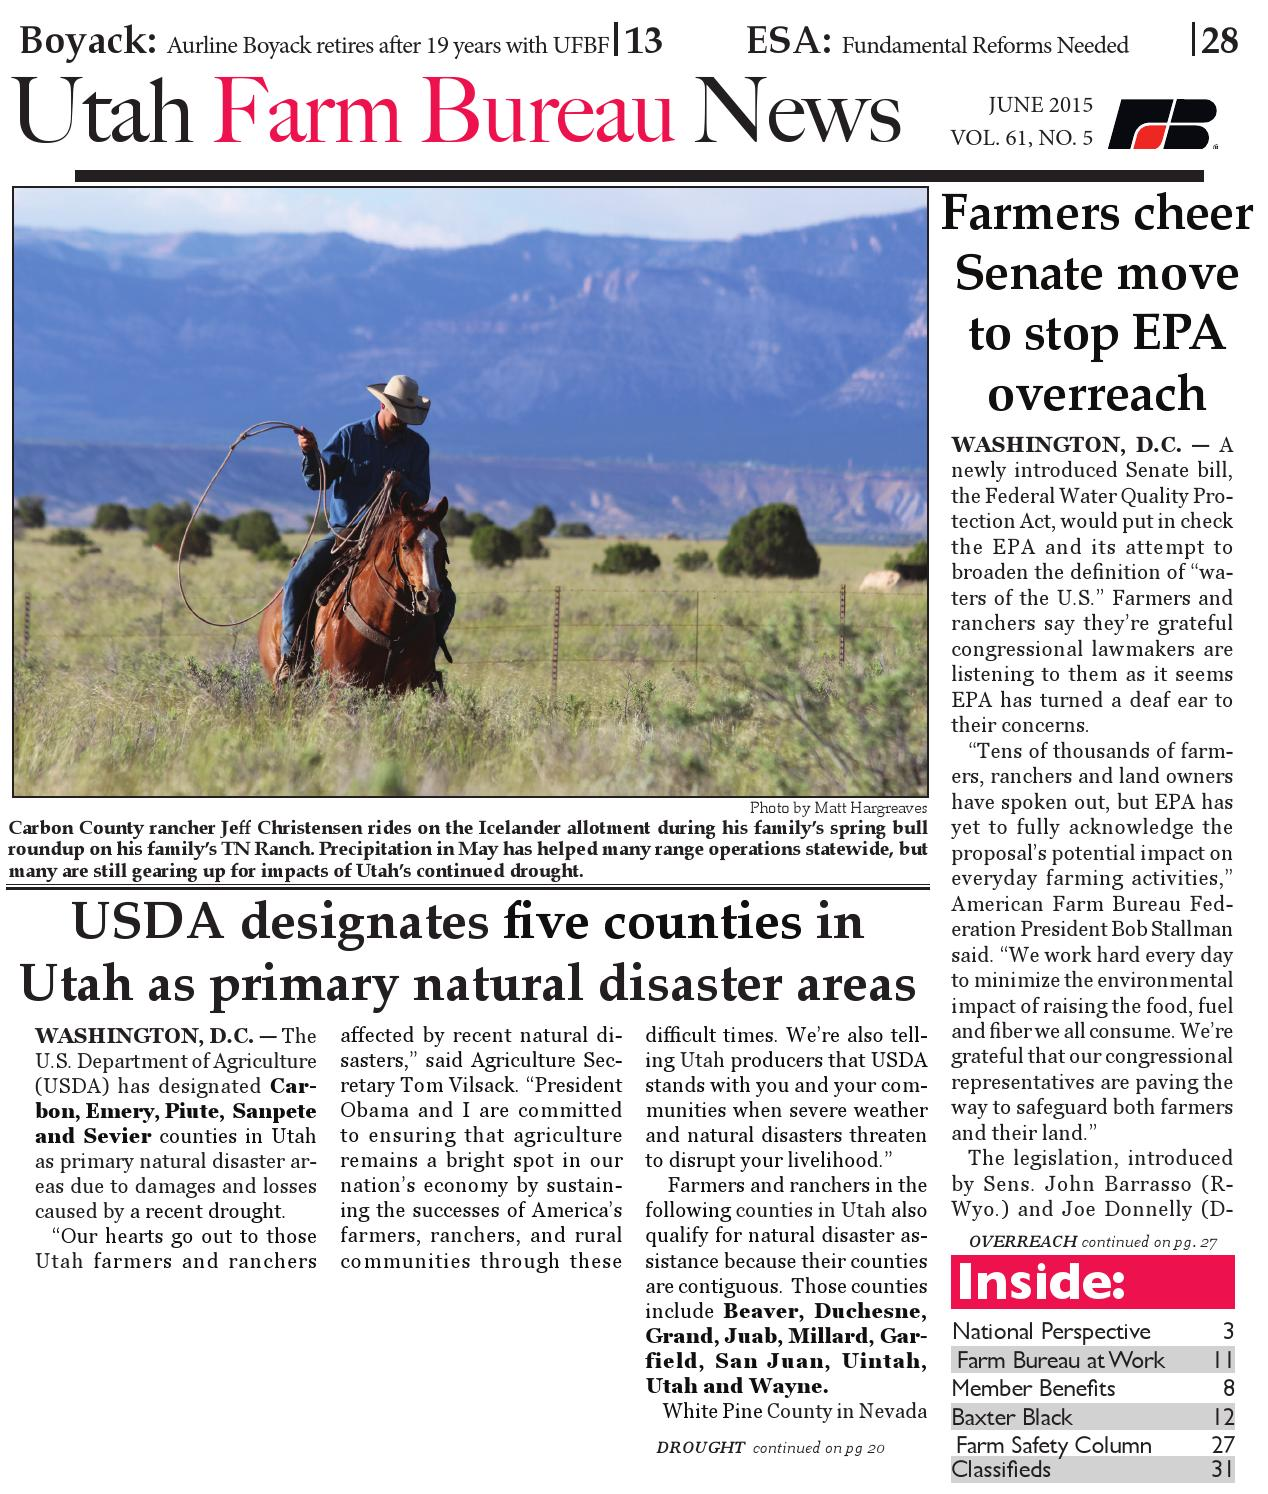 Utah Farm Bureau News - June 2015 by Utah Farm Bureau